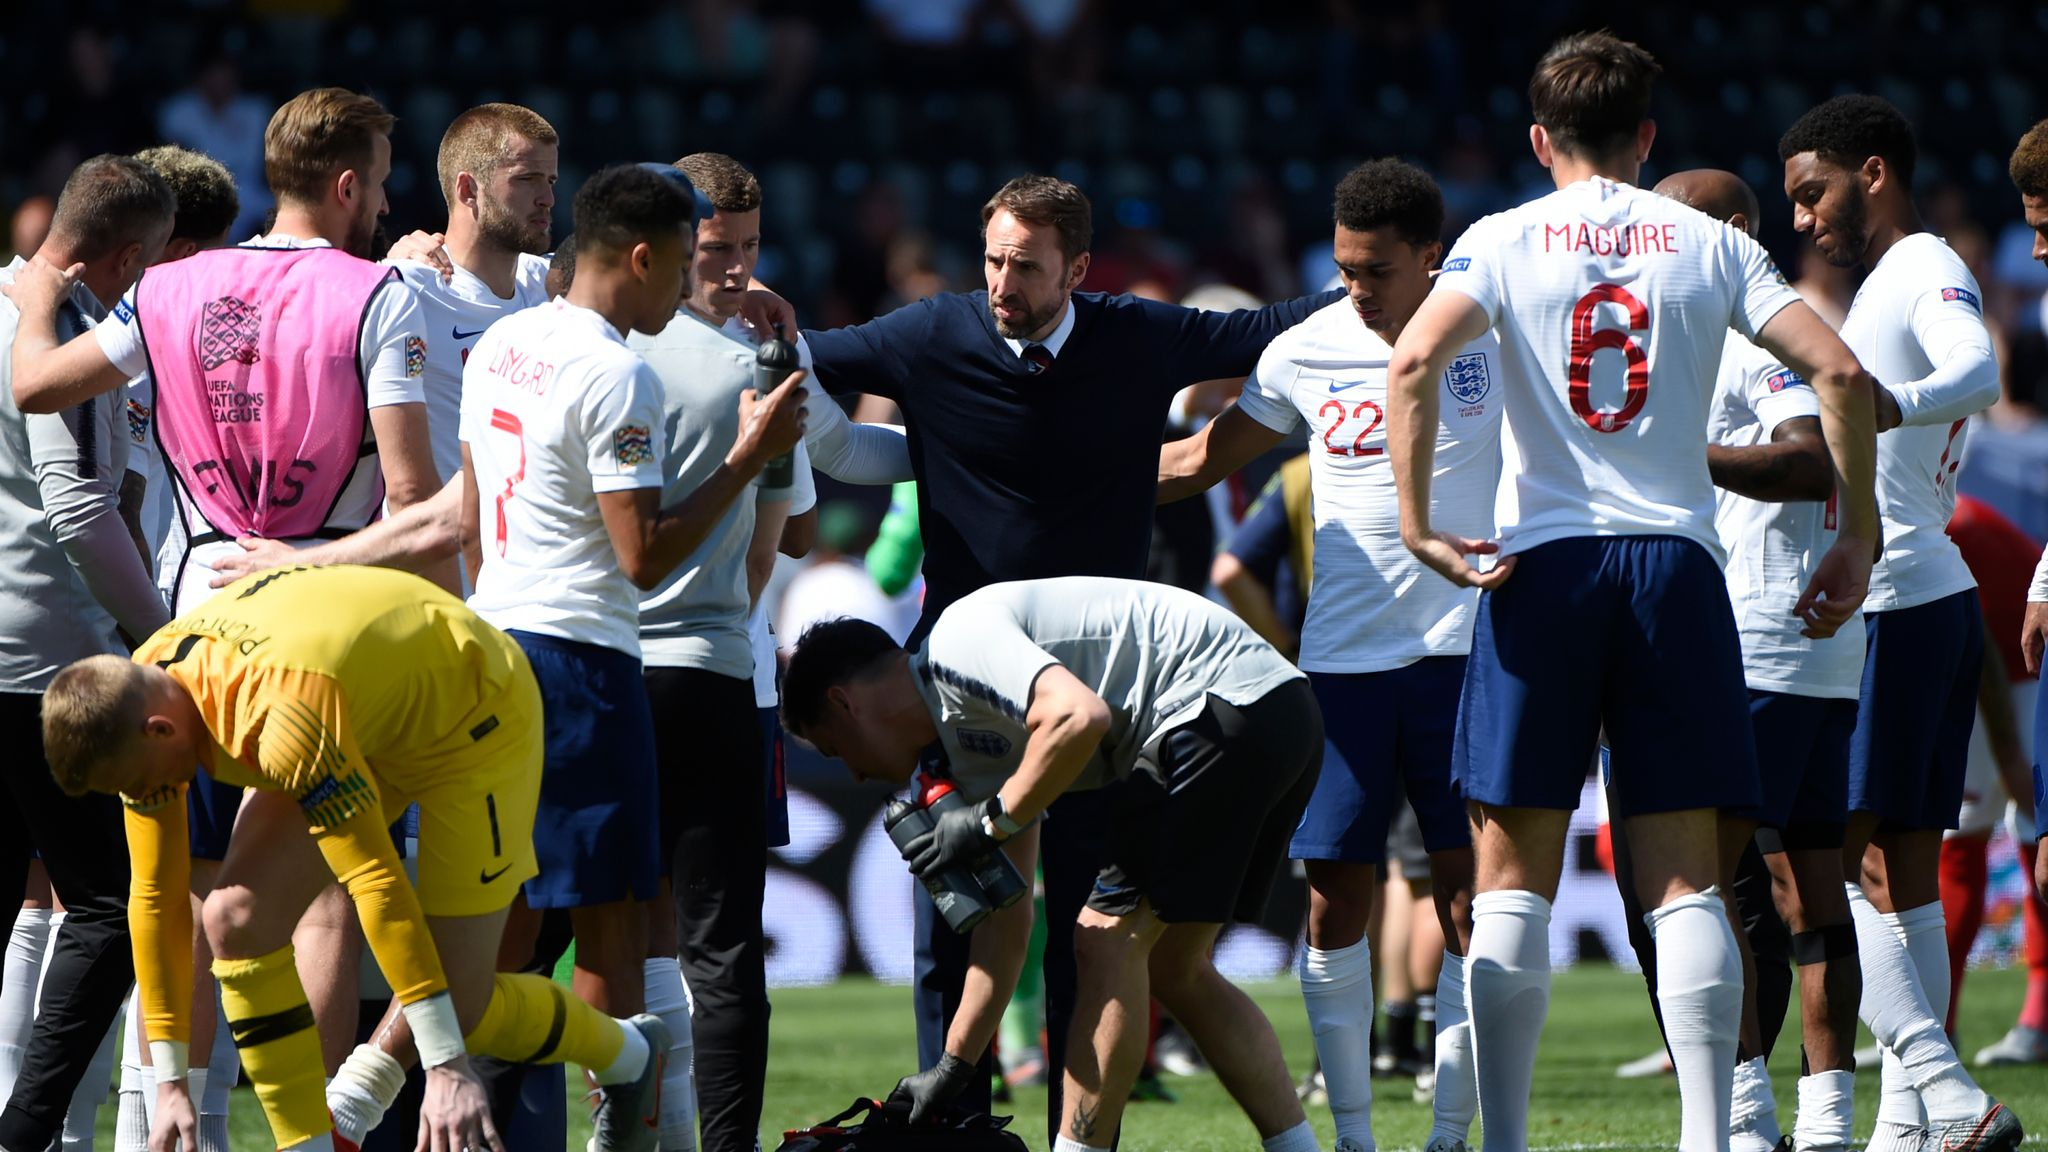 Euro 2020 qualifiers: How are England, Scotland, Wales